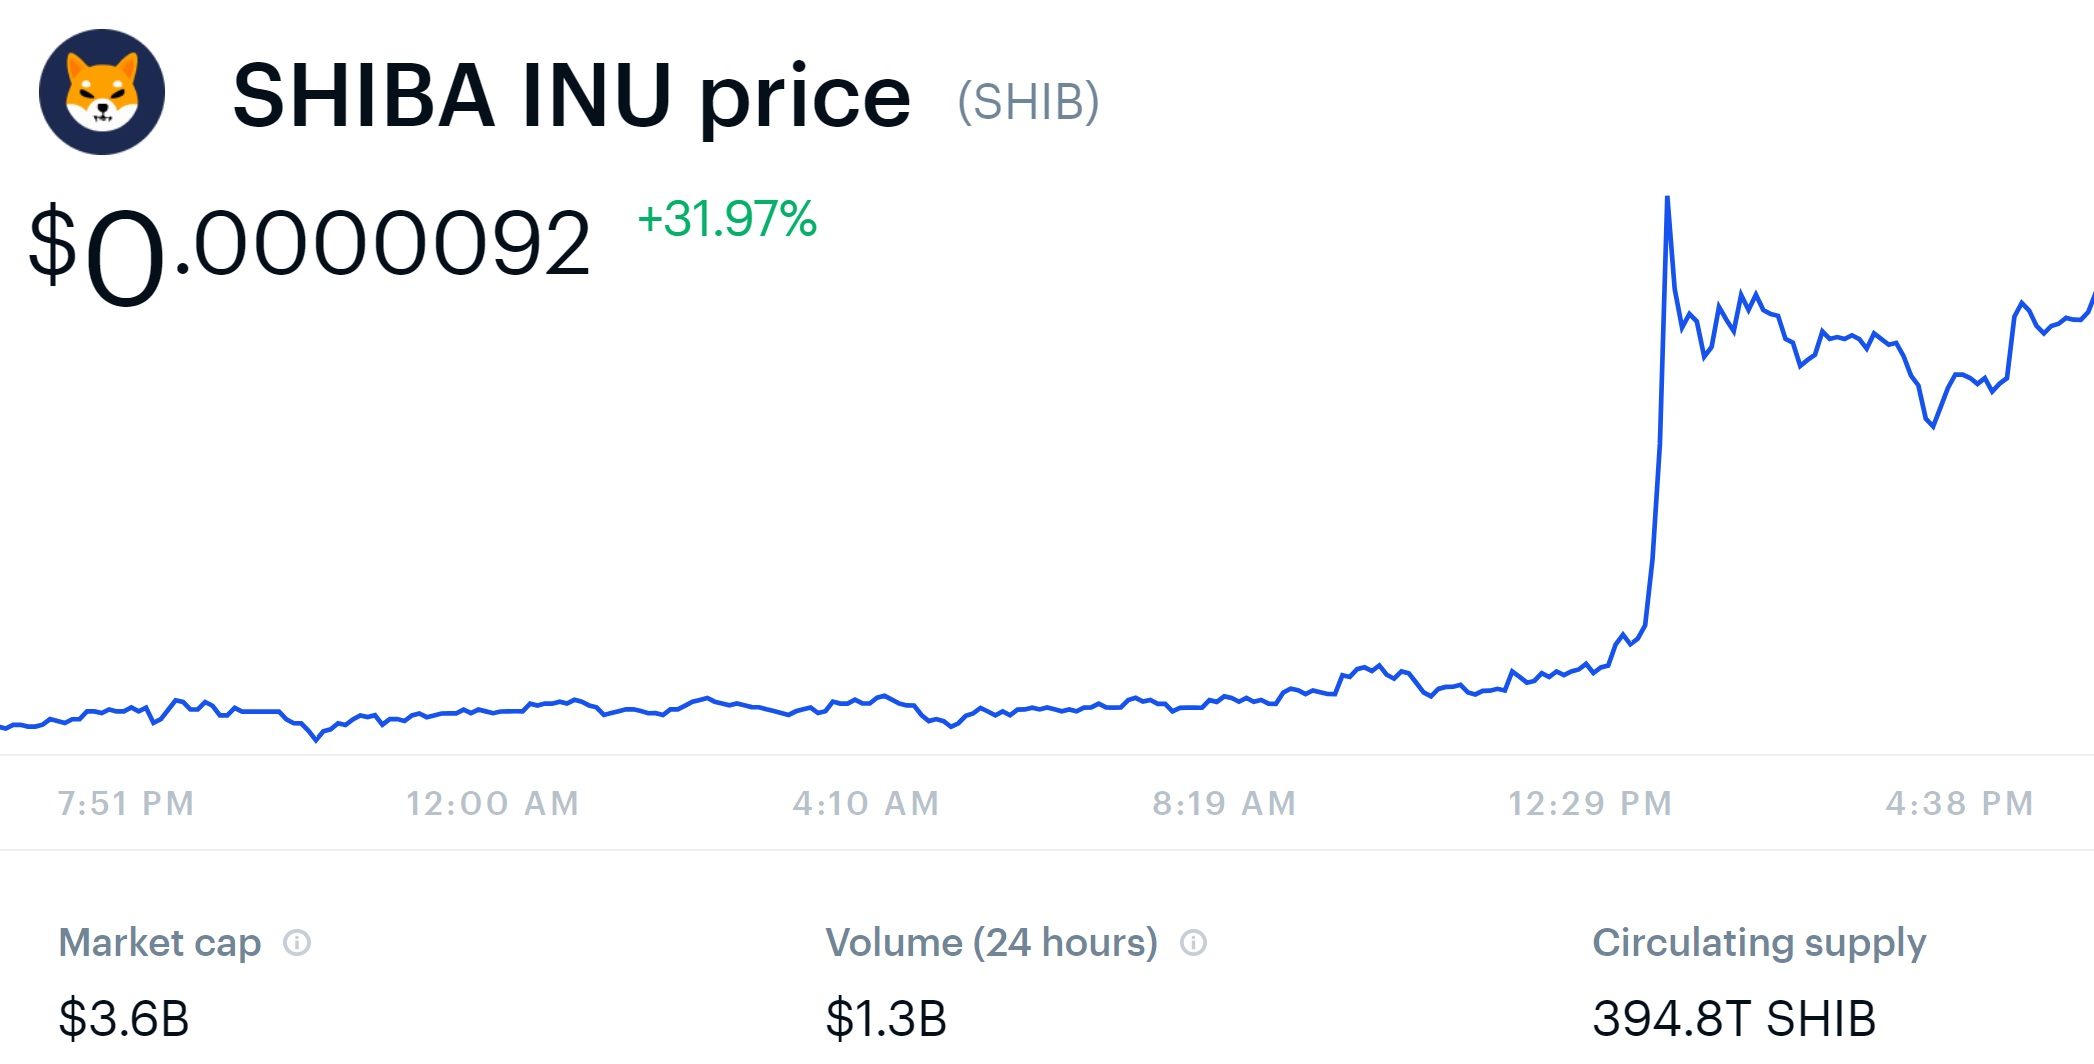 Shiba Inu Coin Price Soars as Coinbase Pro Announces SHIB Cryptocurrency Trading